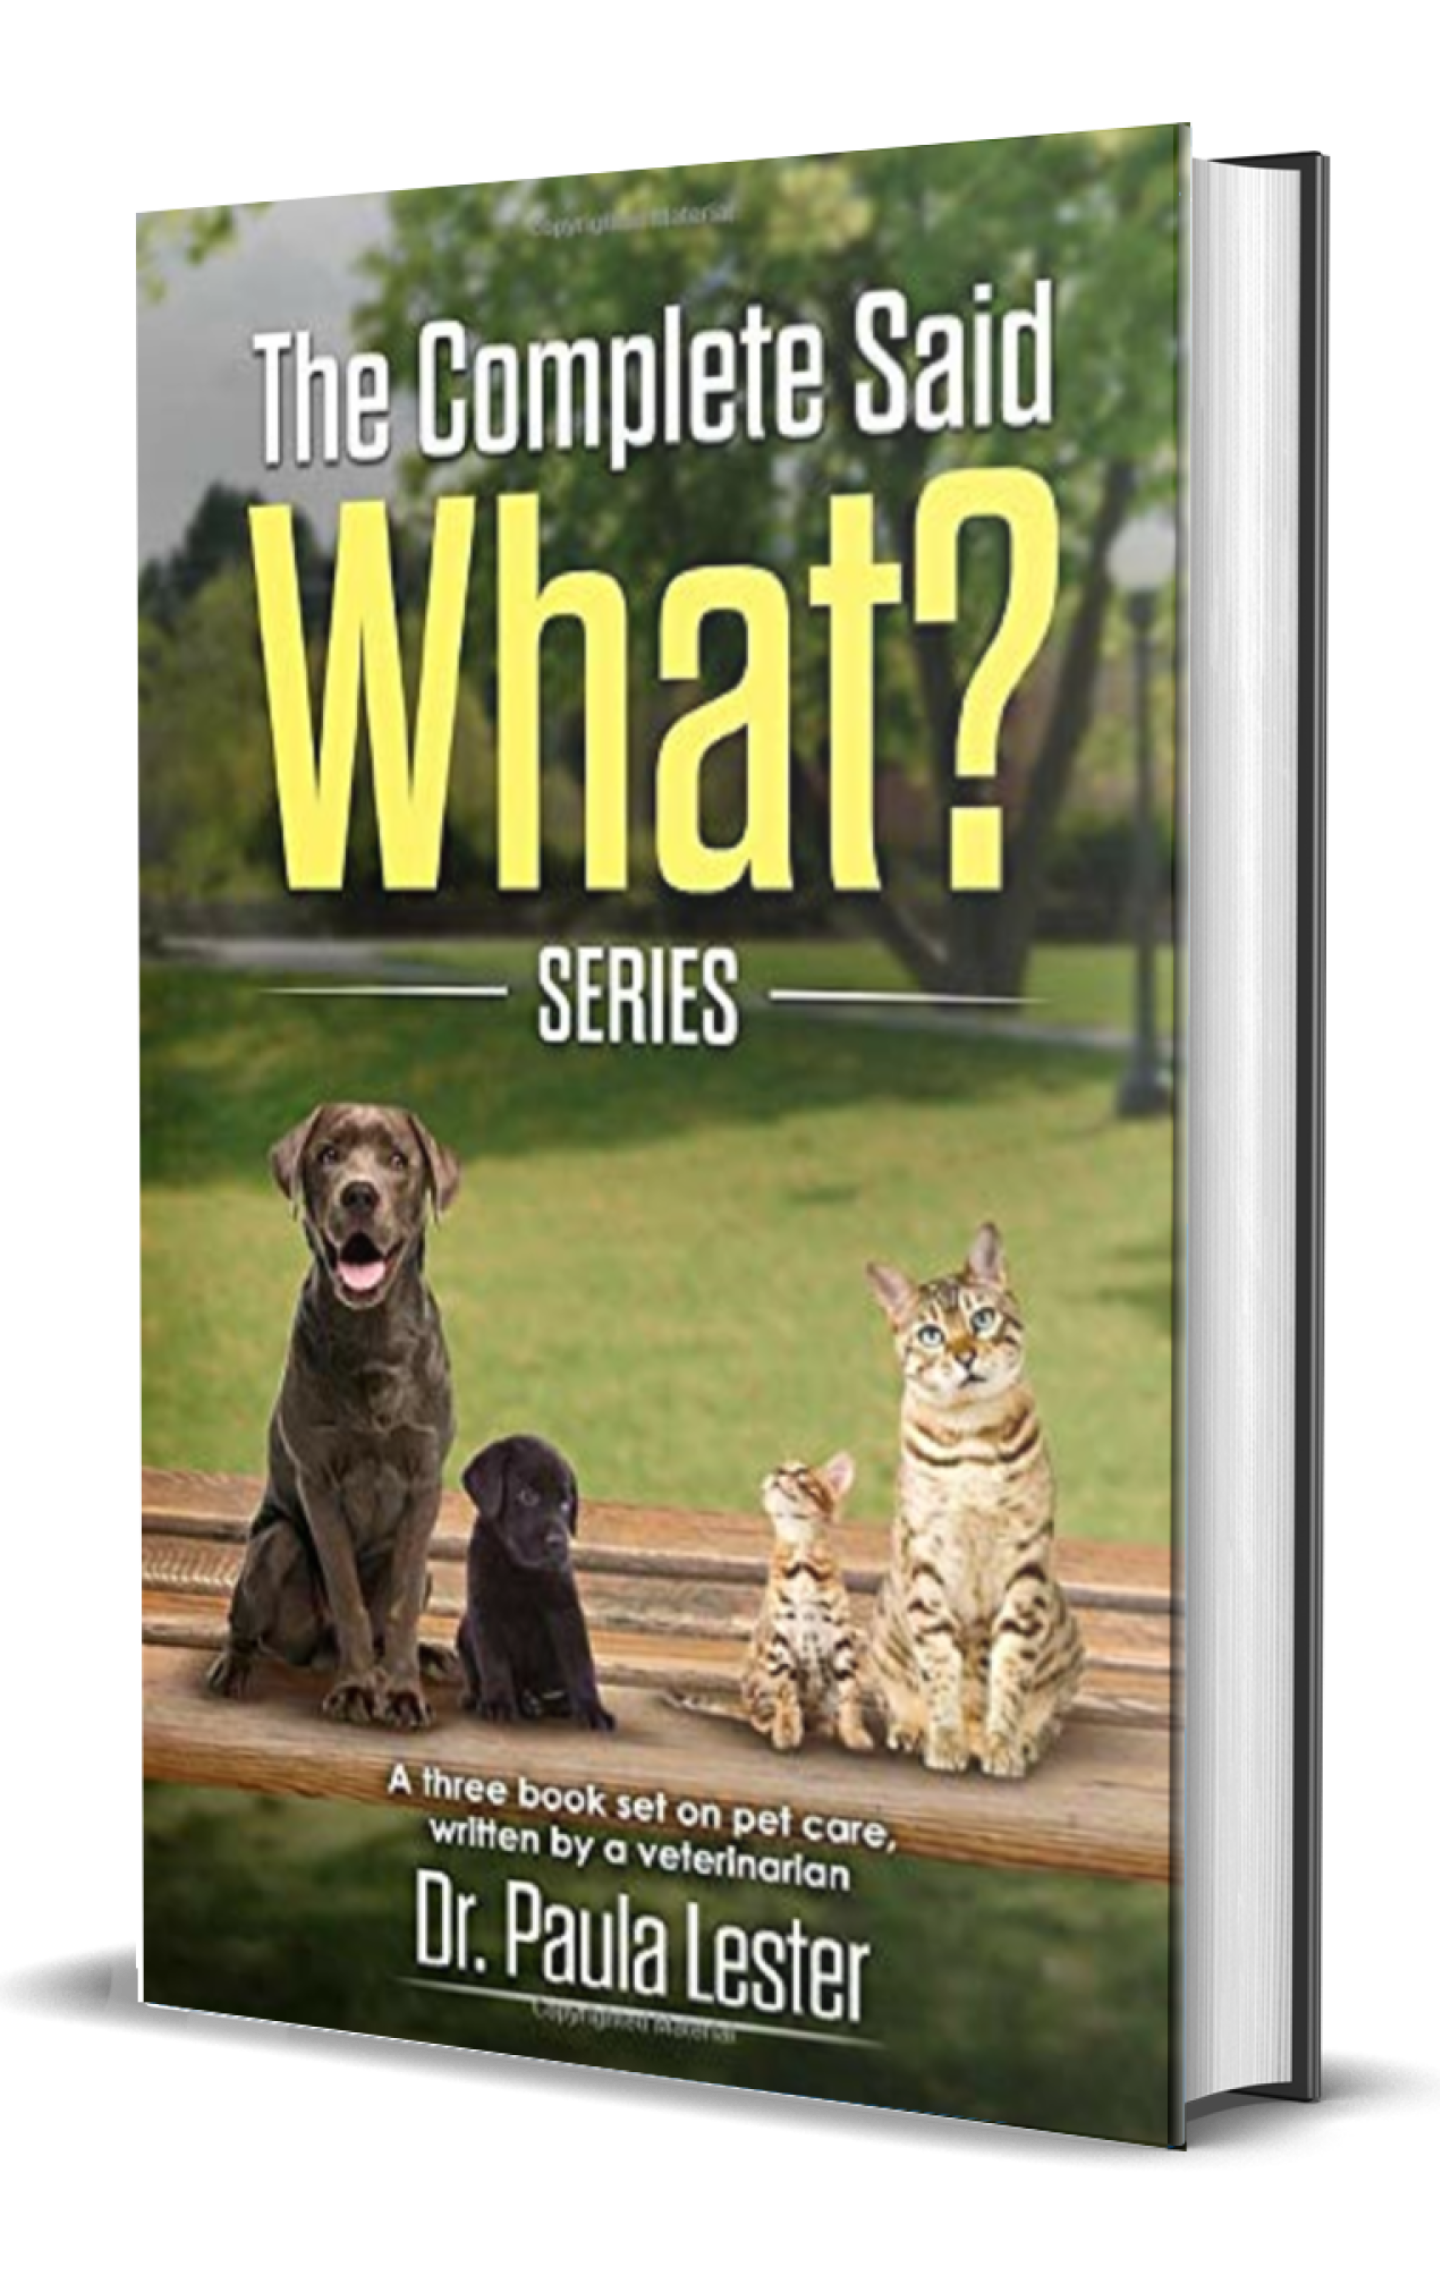 The Complete Said What? Series